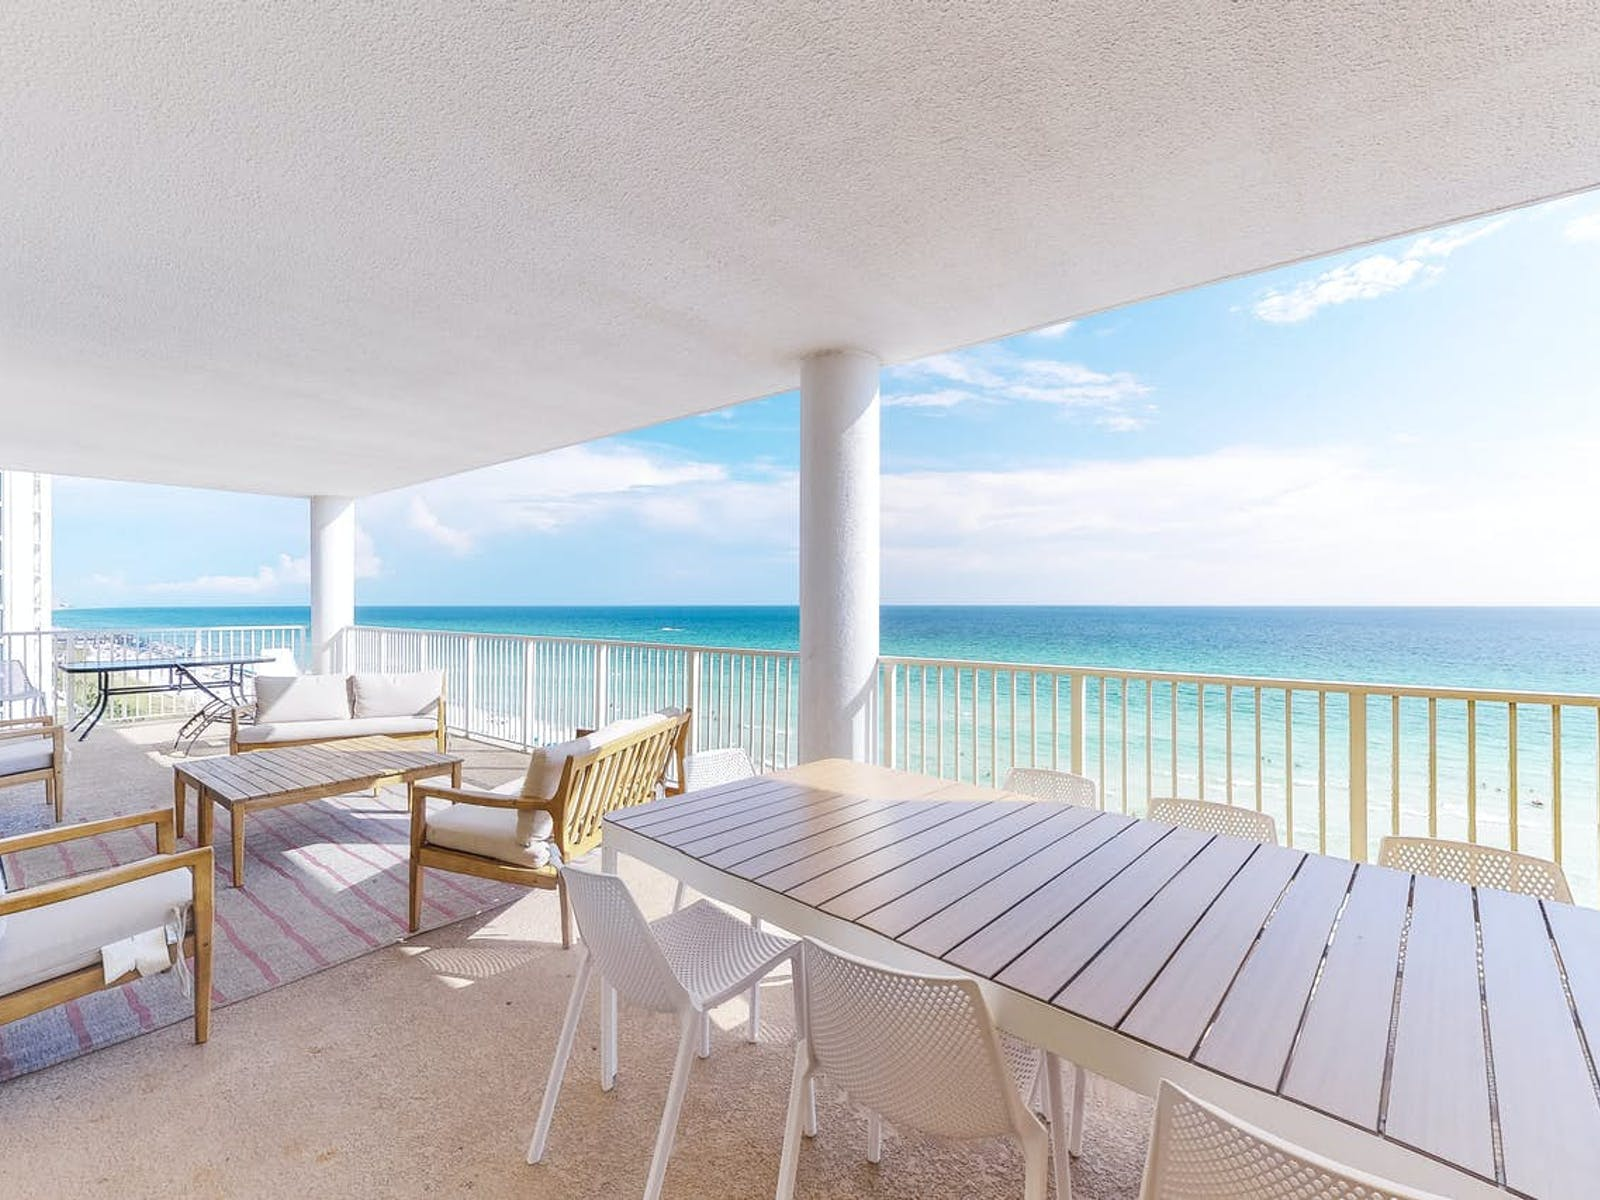 balcony of pcb oceanfront condo decorated with warm wood furnishings and gray tones